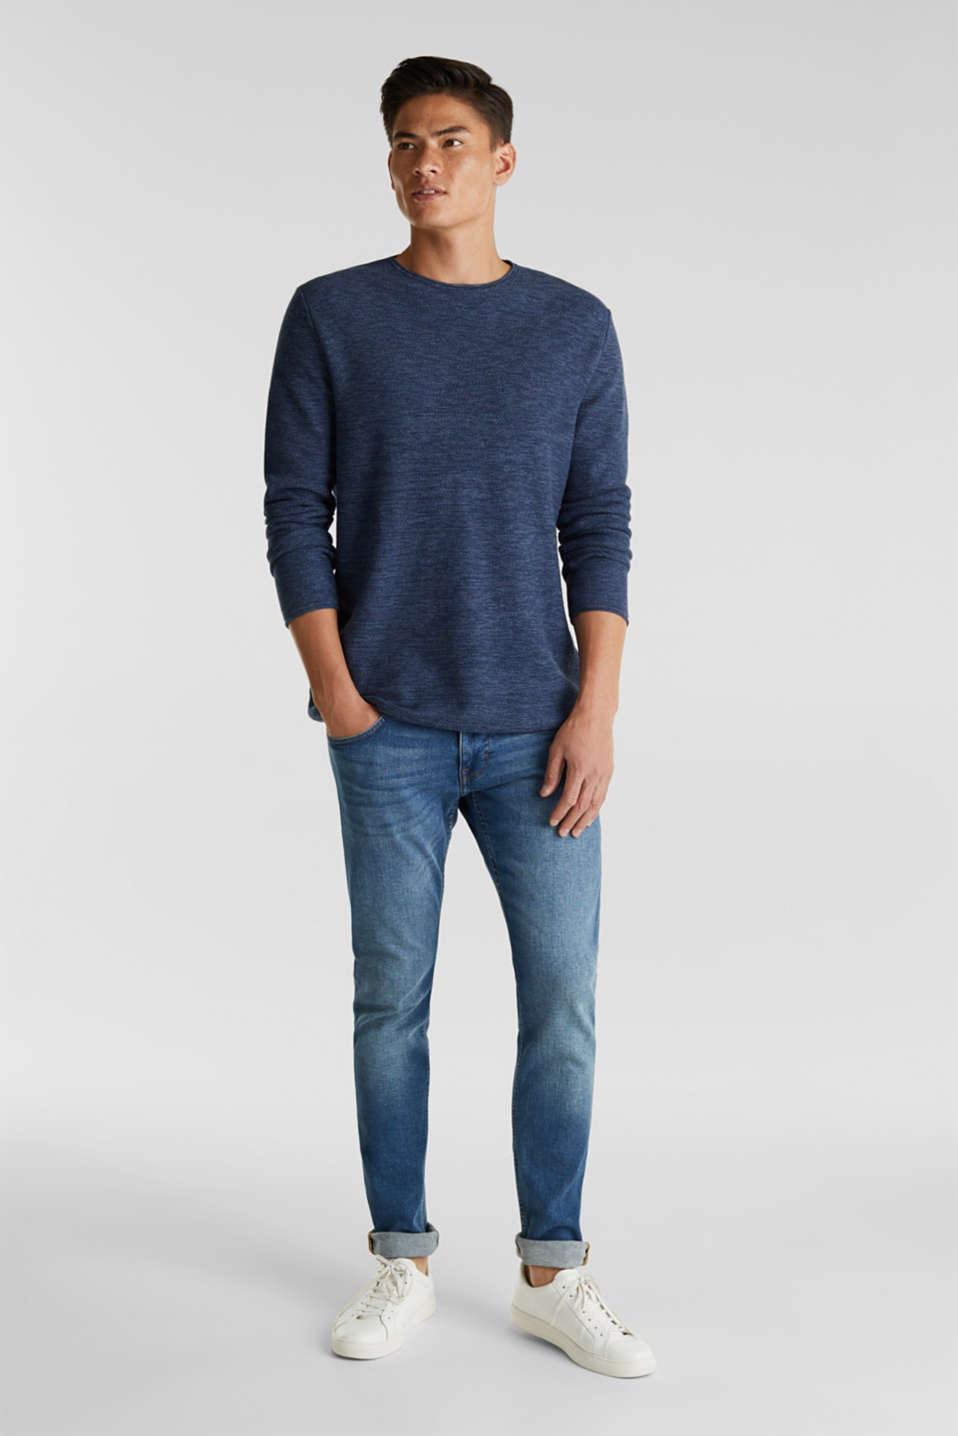 Textured jumper made of 100% cotton, NAVY, detail image number 1